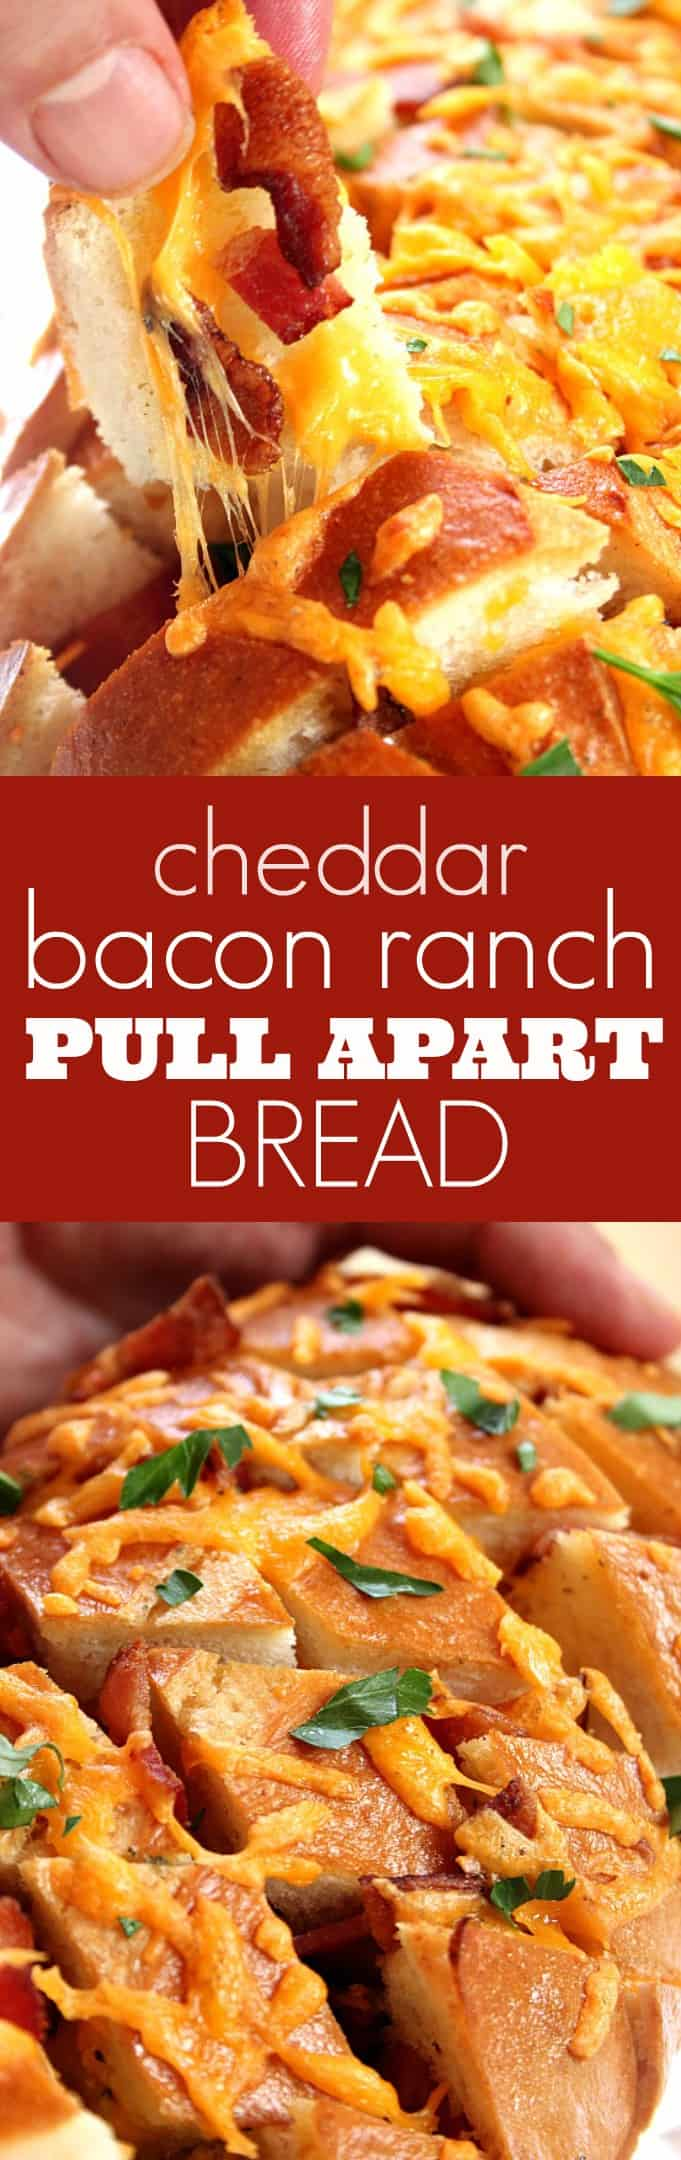 cheddar bacon ranch pull apart bread long Cheddar Bacon Ranch Pull Apart Bread Recipe